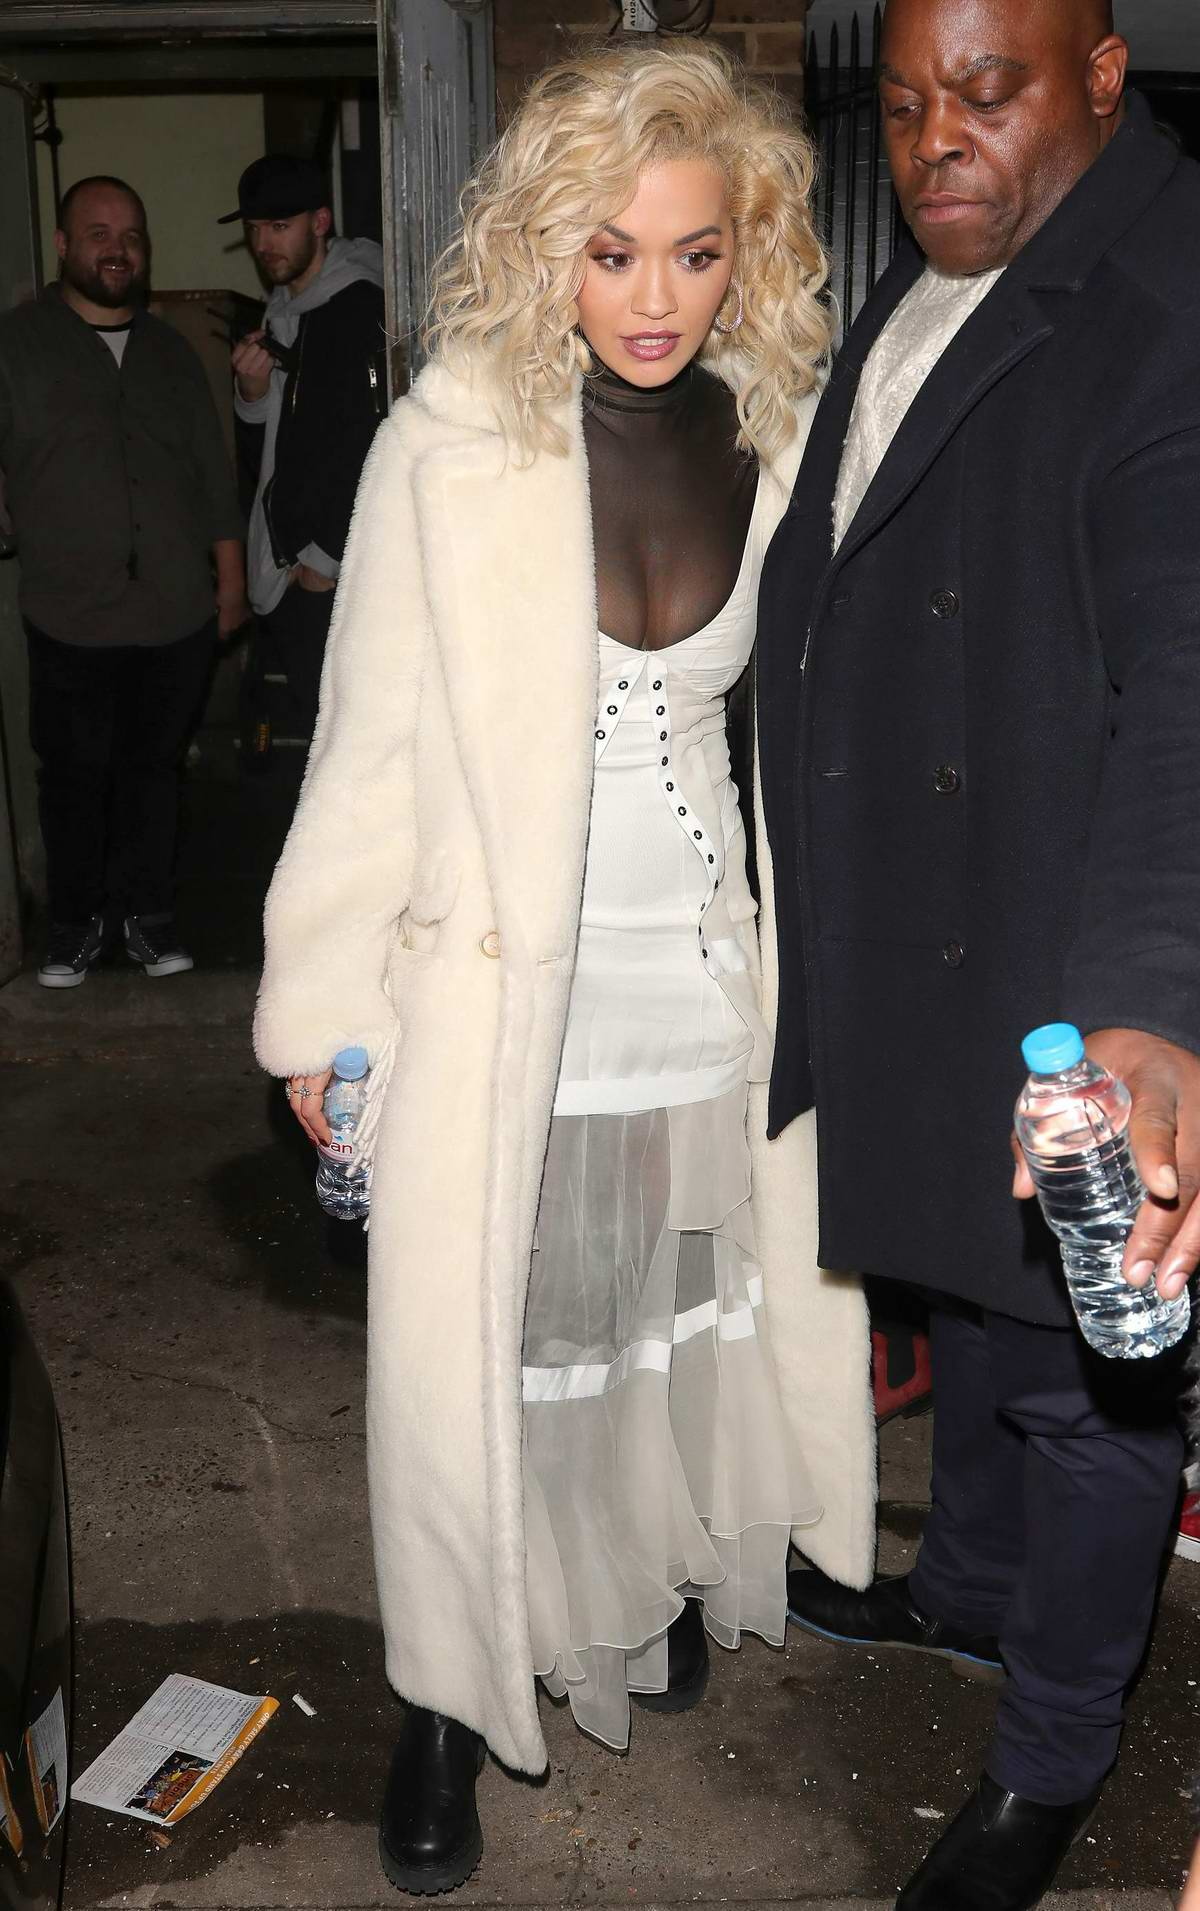 Rita Ora seen wearing a black and white sheer dress with a long coat as she leaves Notting Hill Art's Club in London, UK